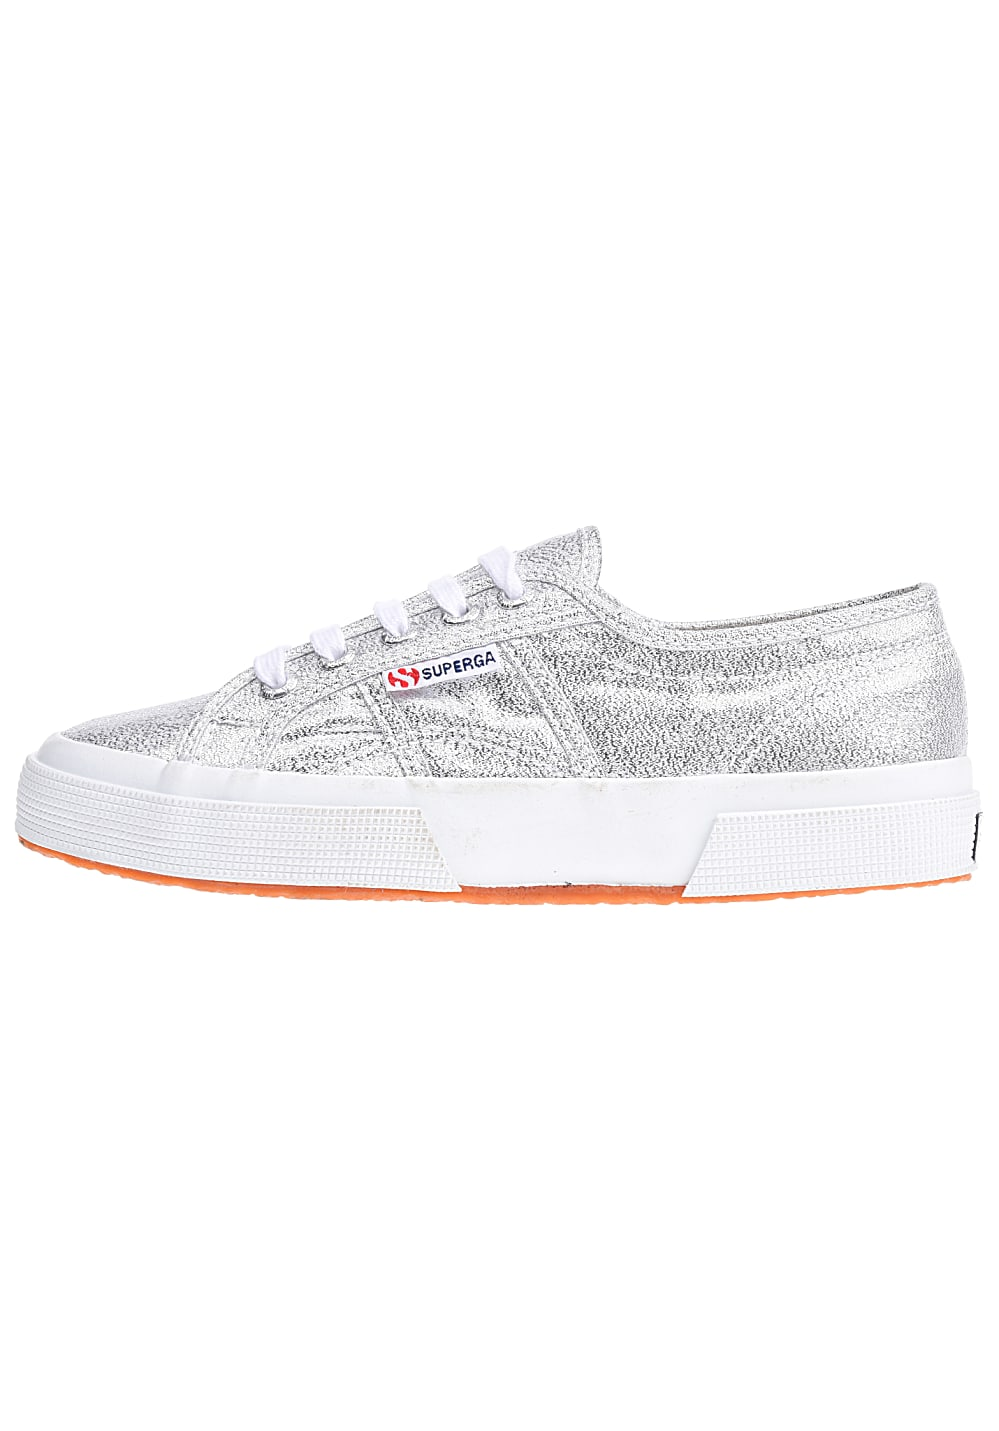 sports shoes 90853 5151d SUPERGA 2750-Lamew - Sneaker für Damen - Silber - Planet Sports